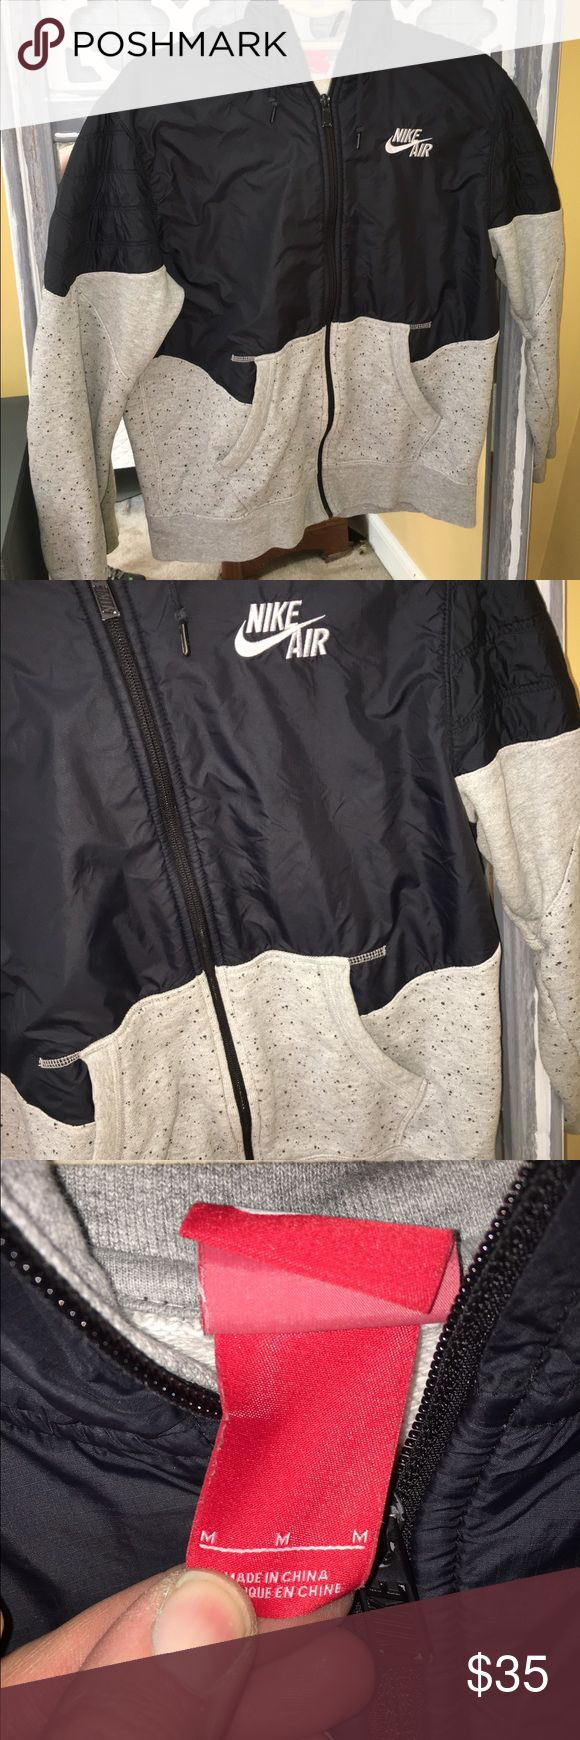 Nike Air Jacket Size Medium Men's Nike Air Jacket in Black and Gray Splatter in size Medium. Like New  Condition. Nike Jackets & Coats Performance Jackets